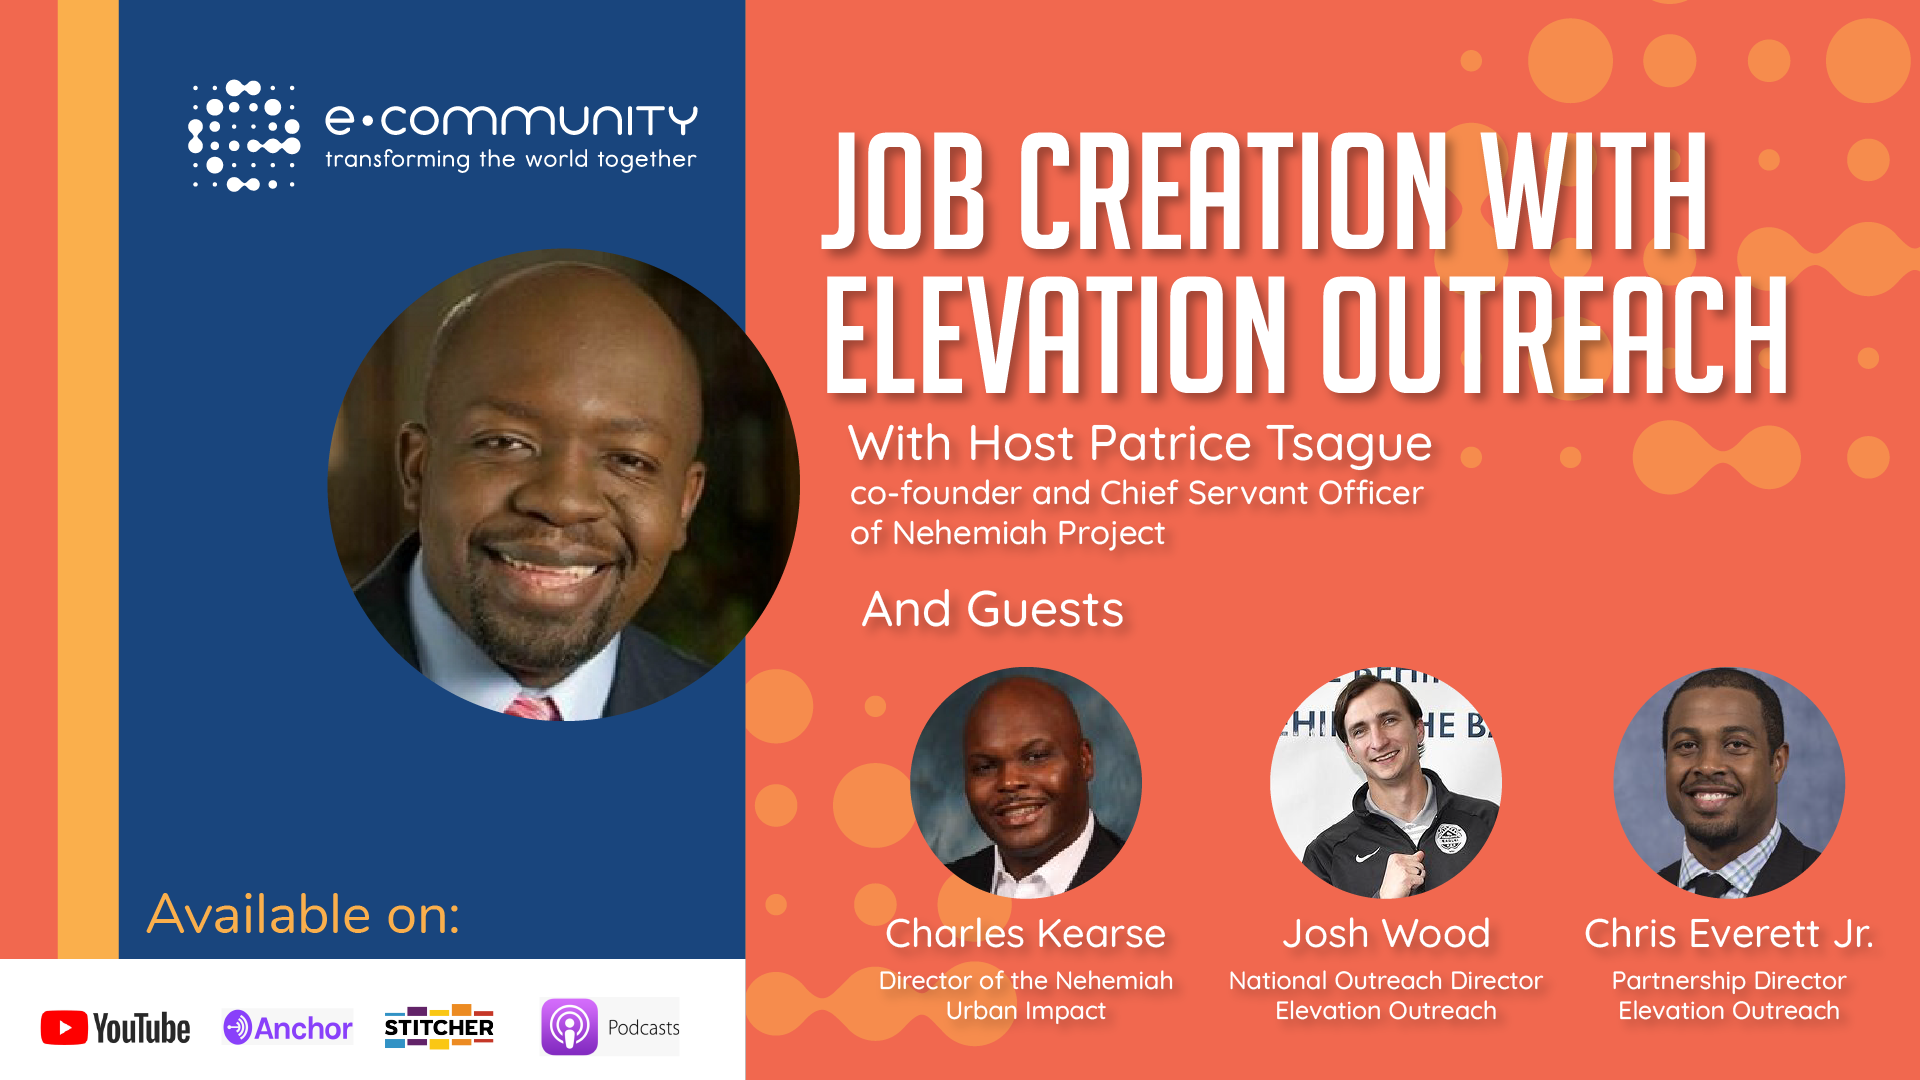 Job Creation with Elevation Outreach